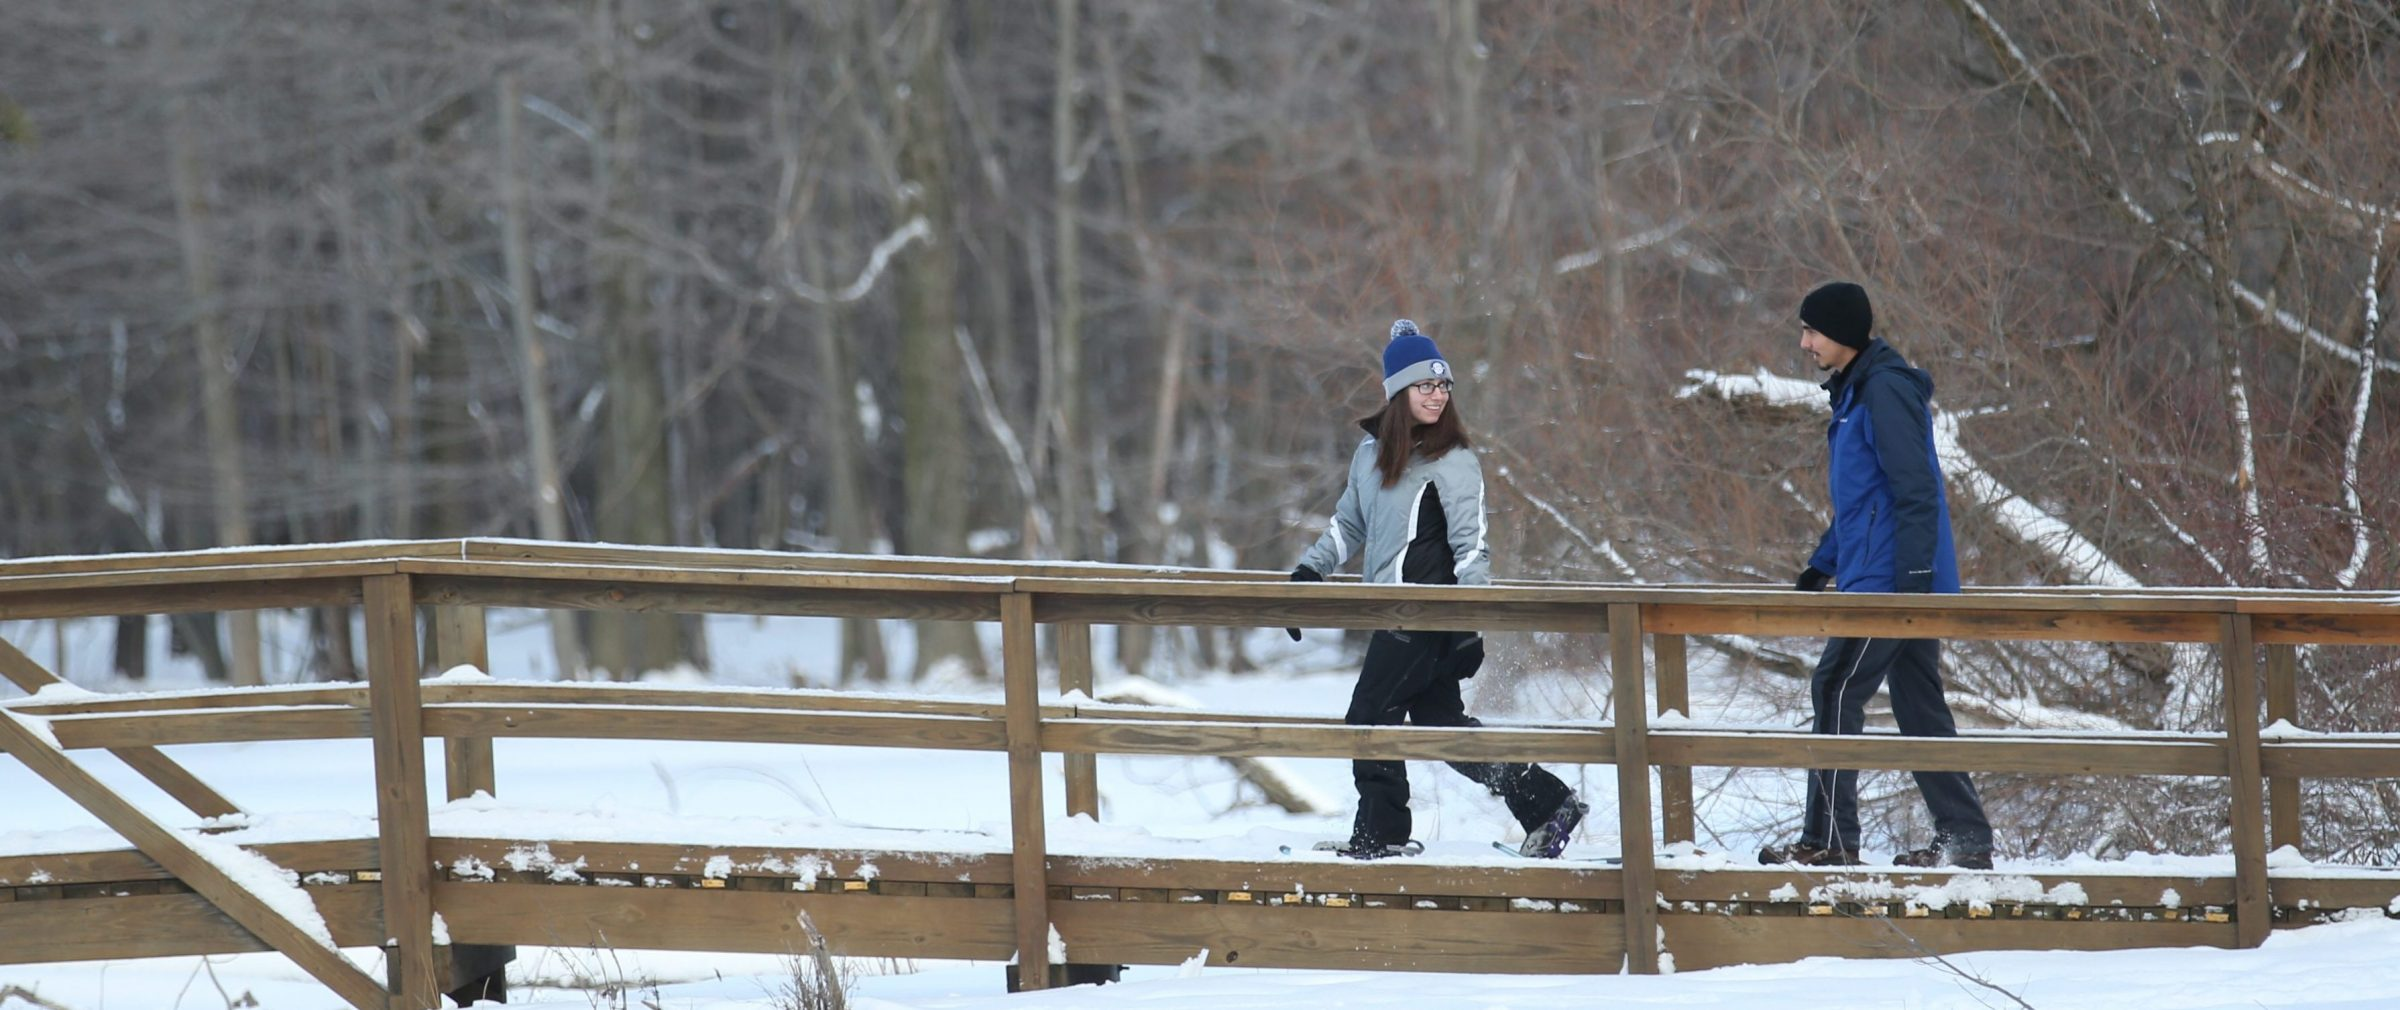 Reinstein Woods Nature Preserve in Depew will host its annual Winter Wonderland on Saturday. (Sharon Cantillon/Buffalo News file photo)